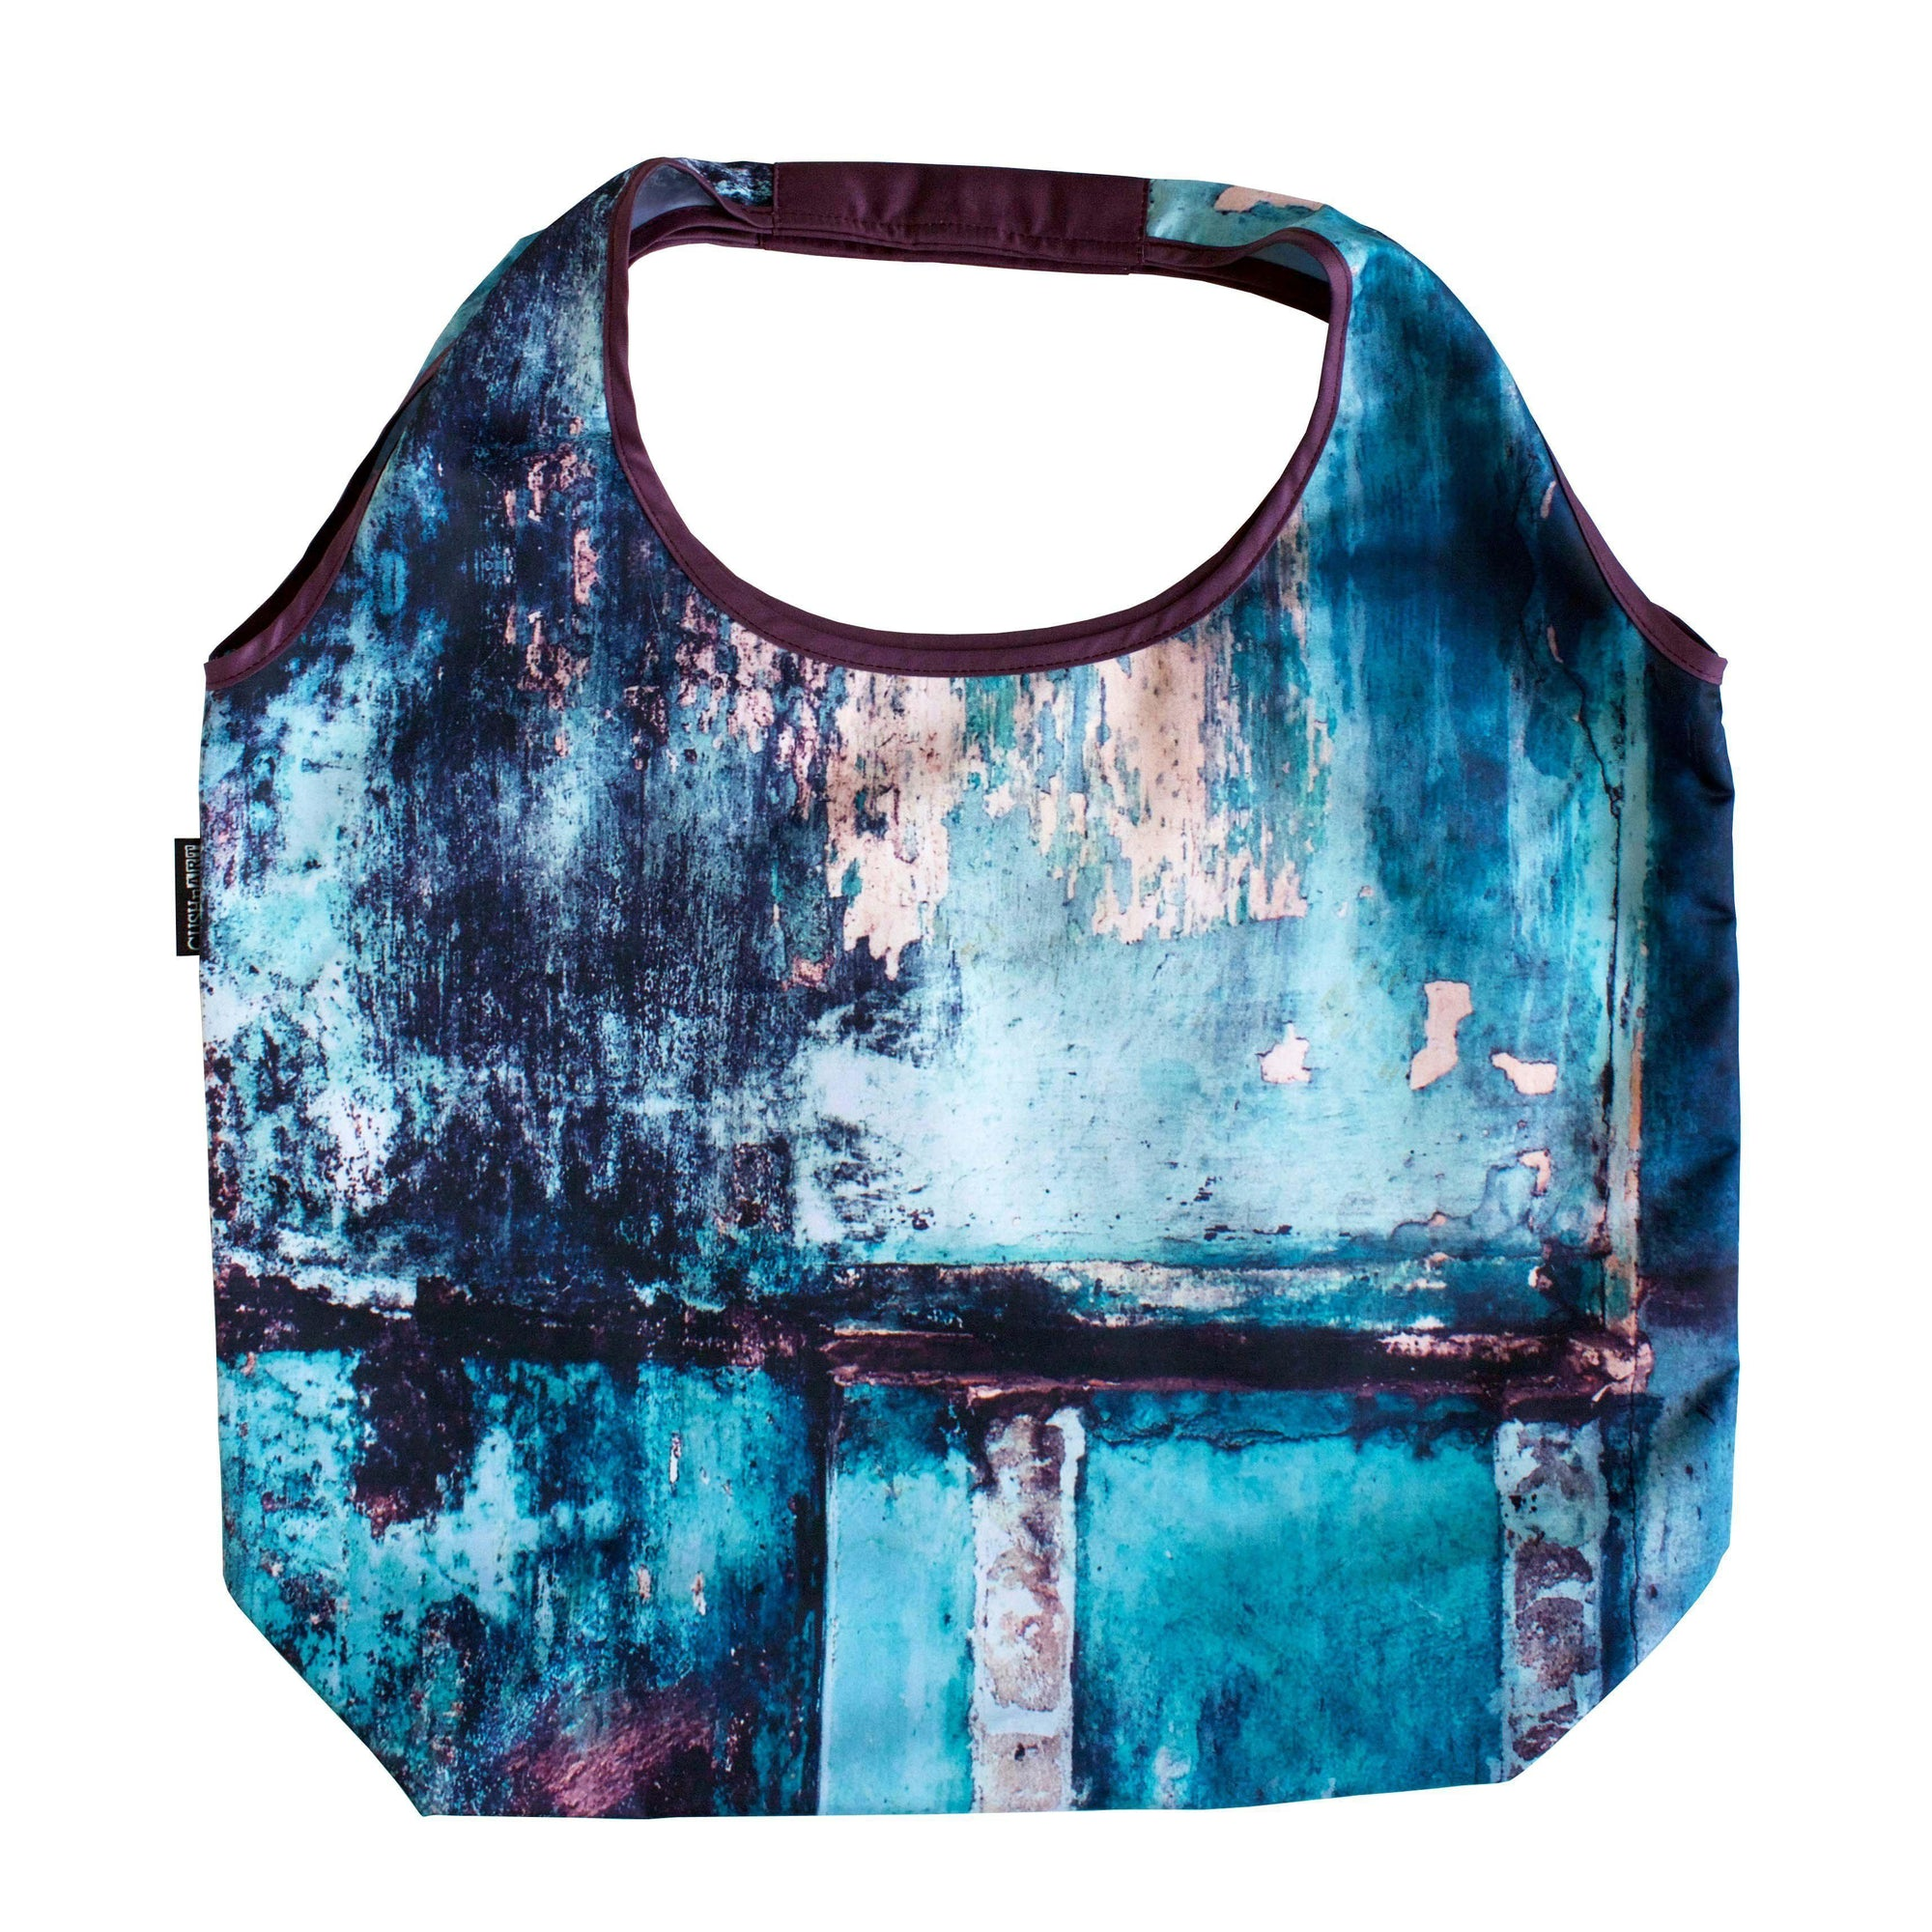 Teal Wall Foldable Tote Bag